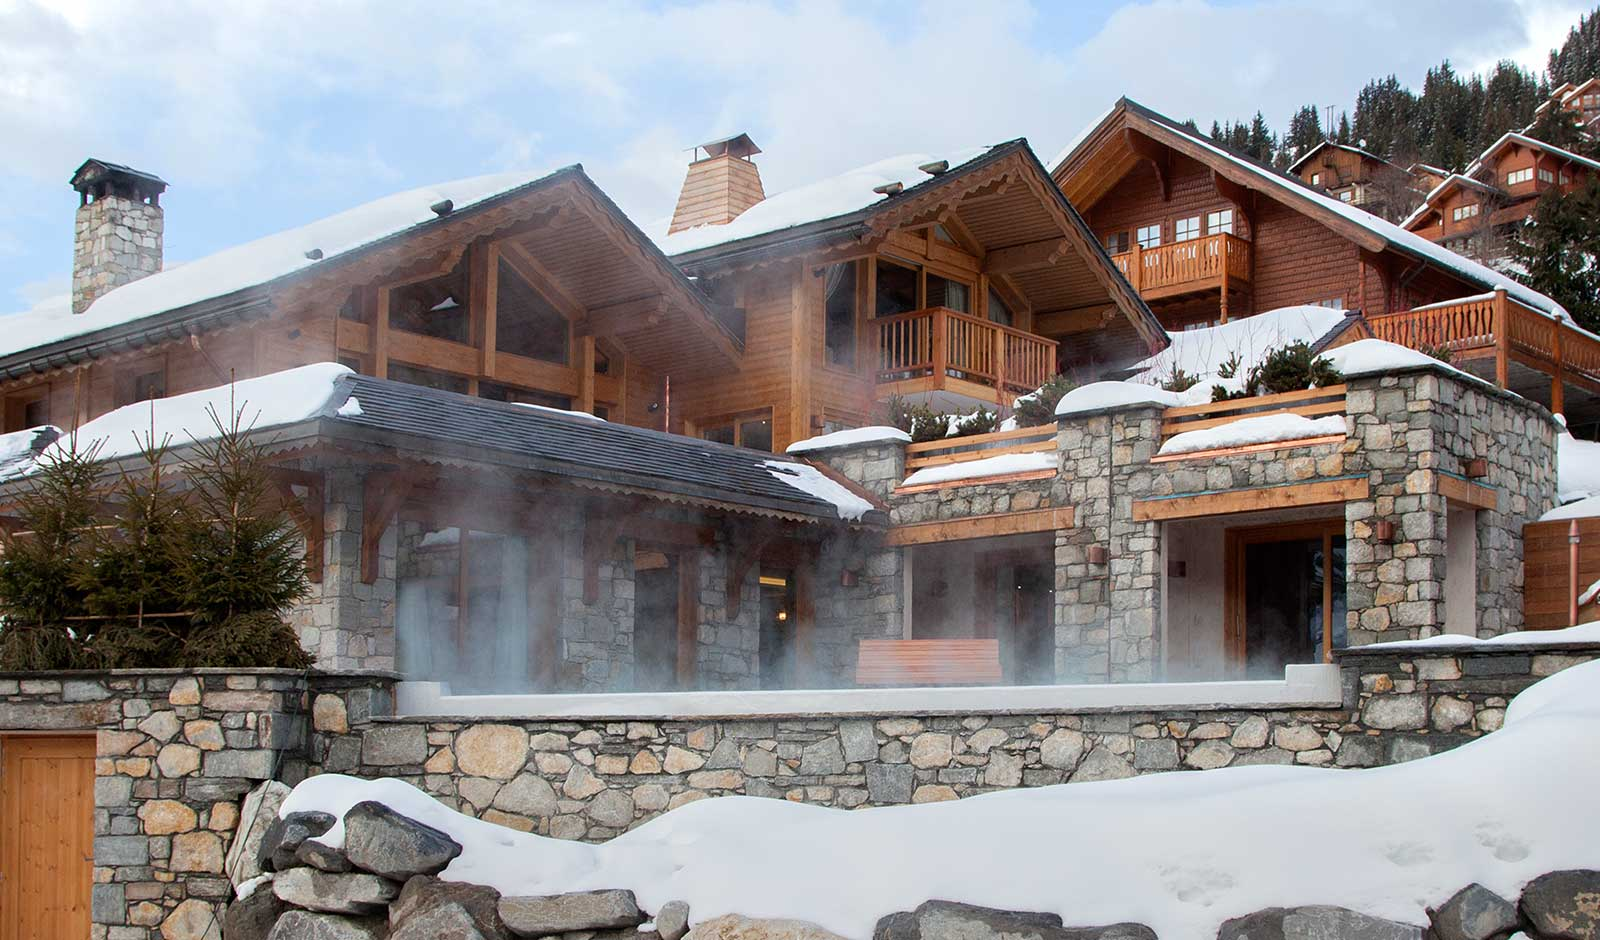 chalet-mont-tremblant-16-atelier-crea-and-co-architecte-design-project-manager-meribel-savoie